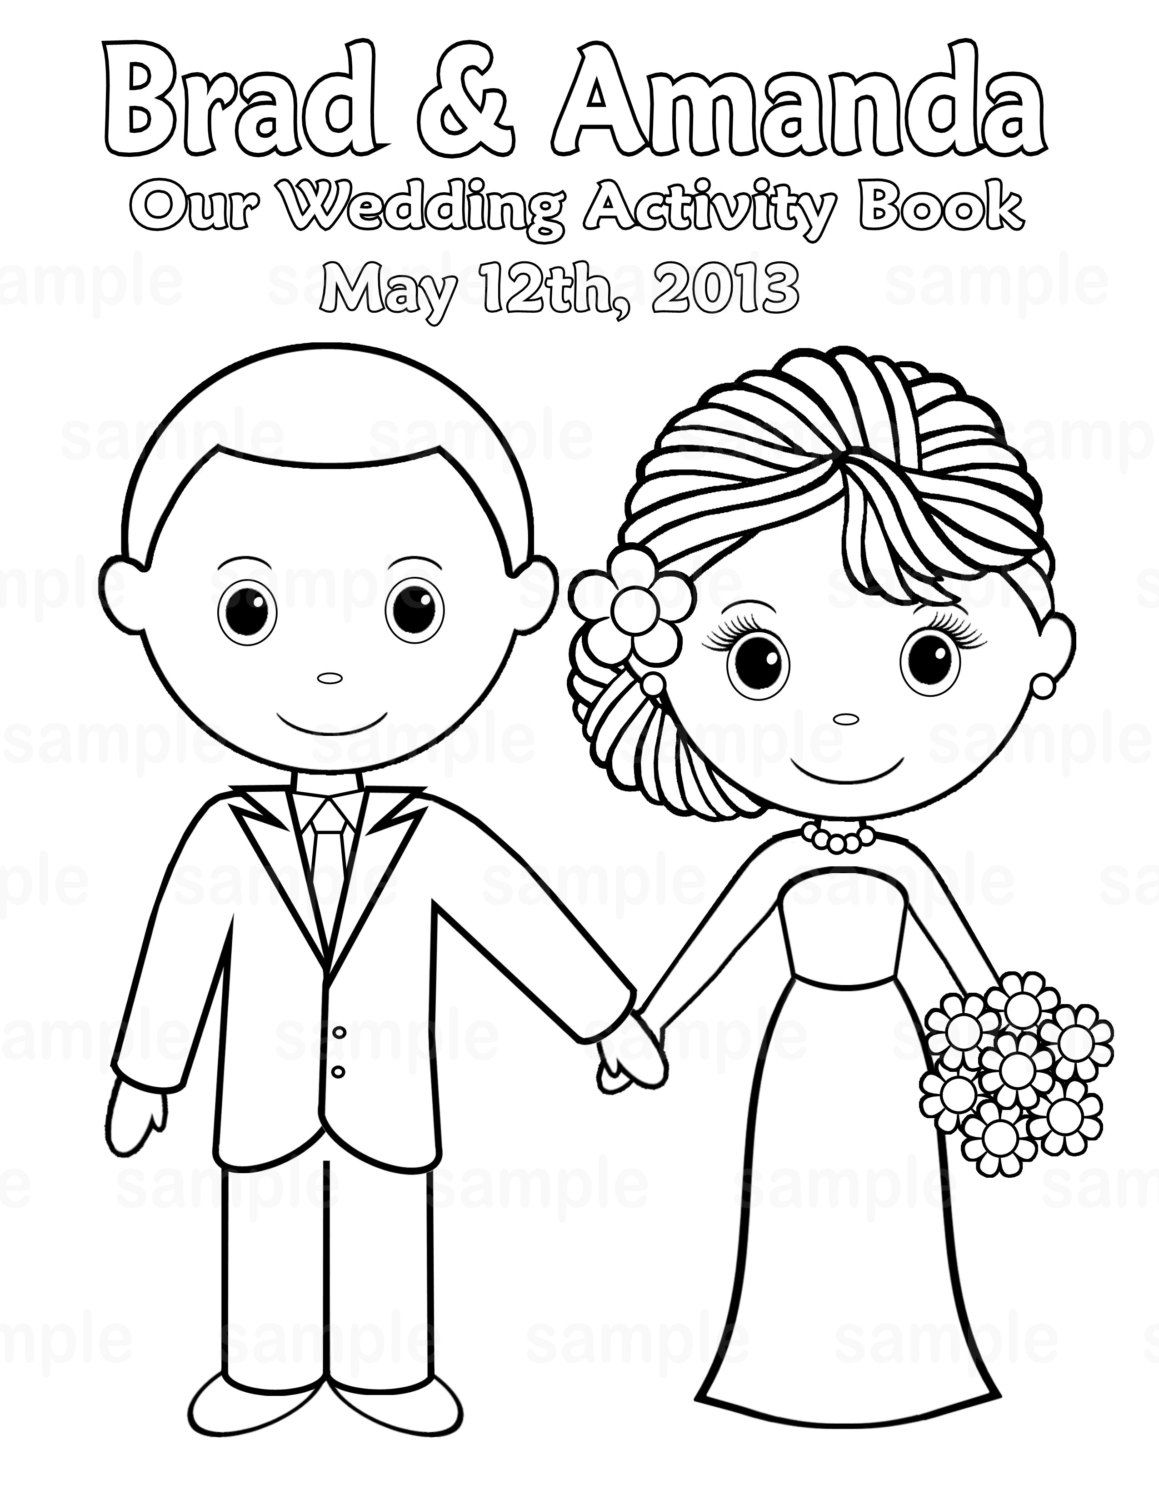 Printable Personalized Wedding Coloring Activity Book Favor Kids 85 X 11 PDF Or JPEG TEMPLATE